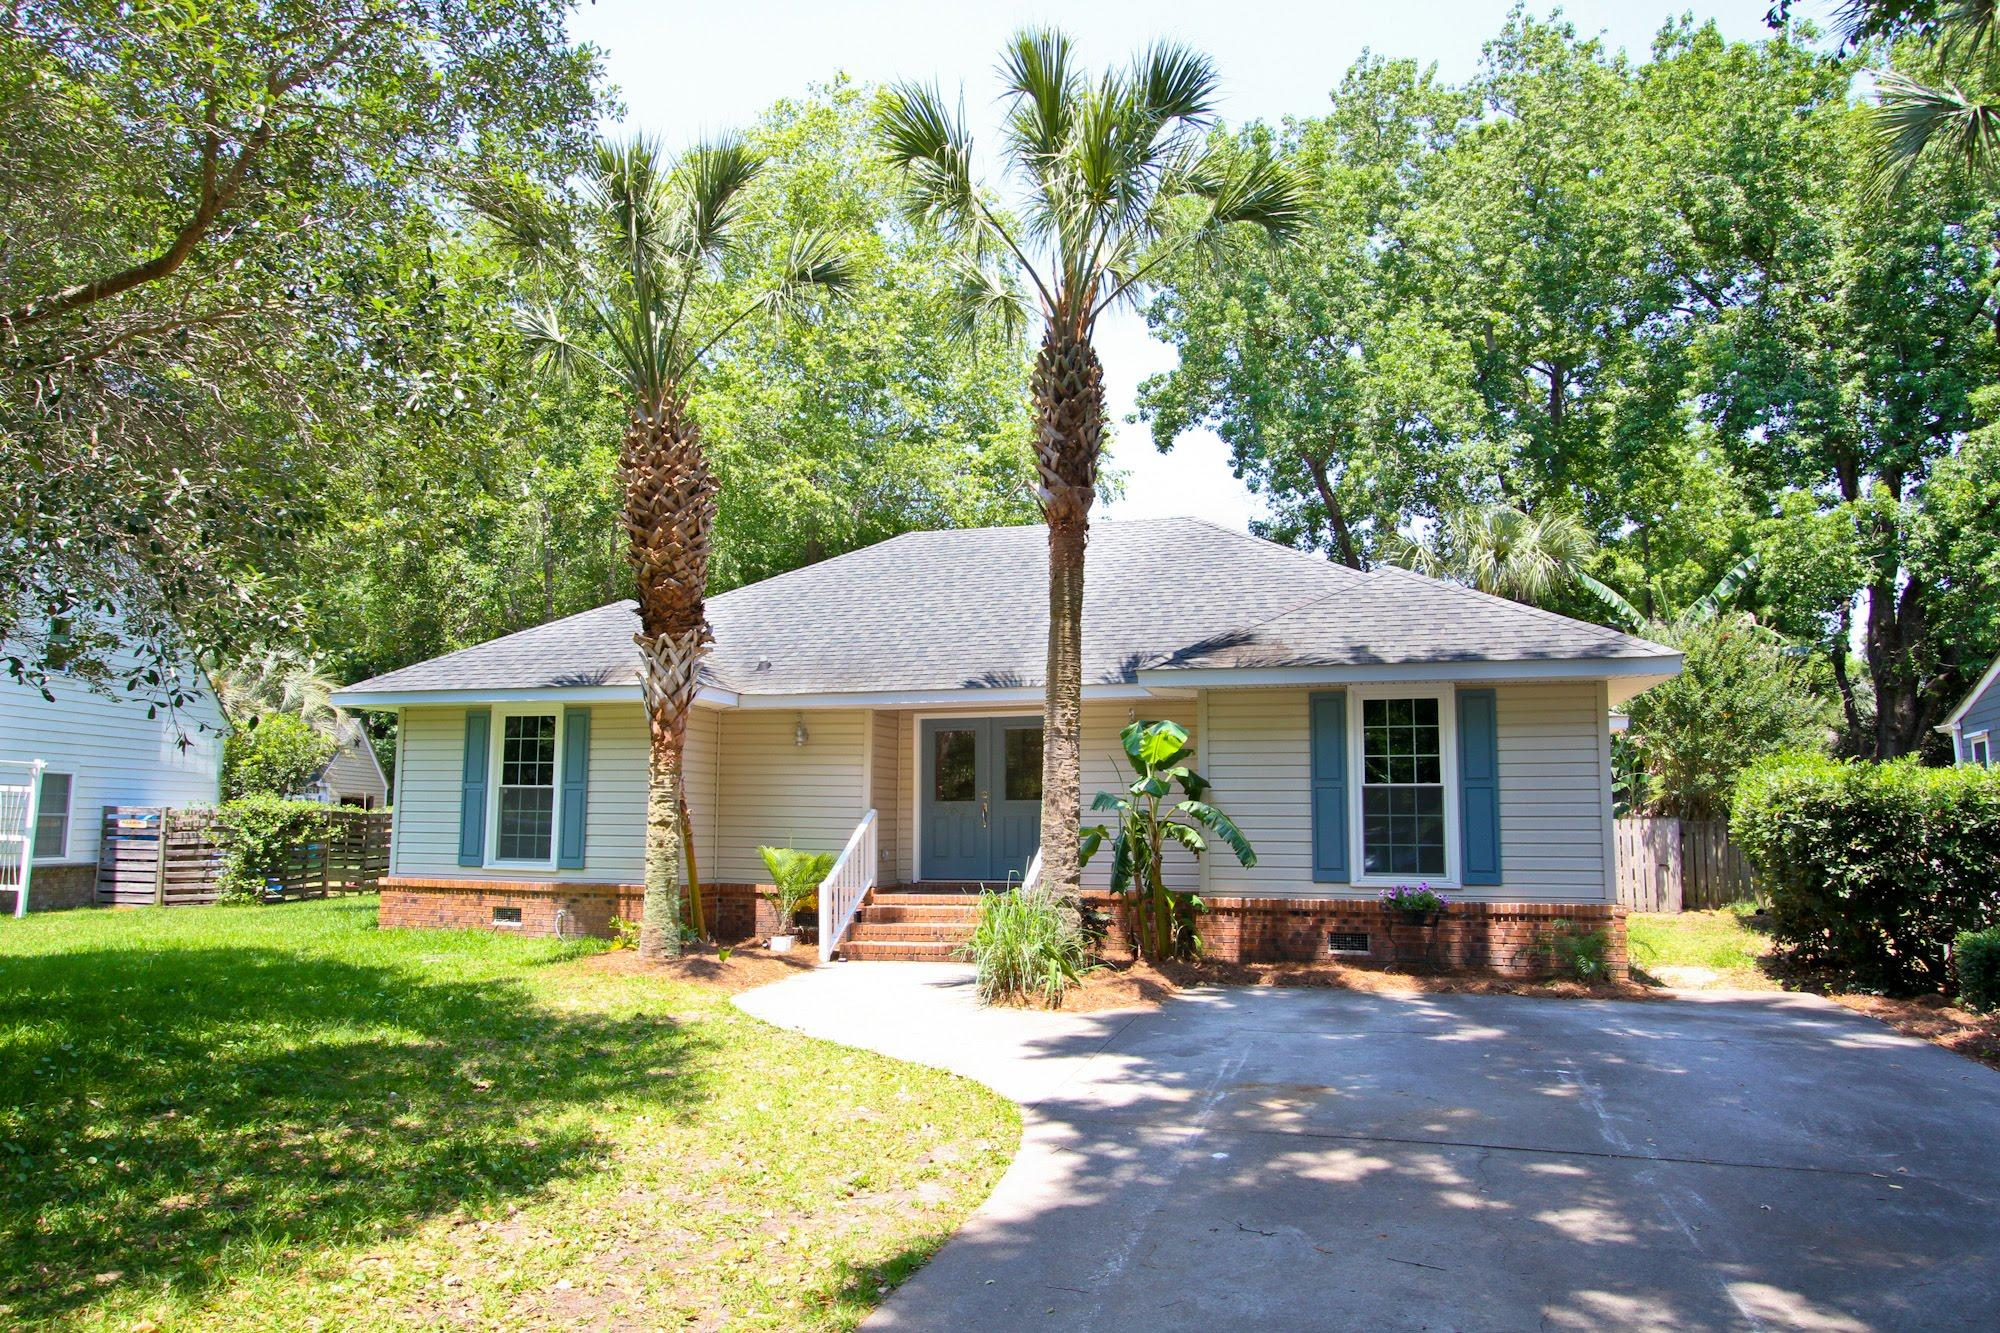 Bayfield Manor Homes For Sale - 962 Mooring, Charleston, SC - 0